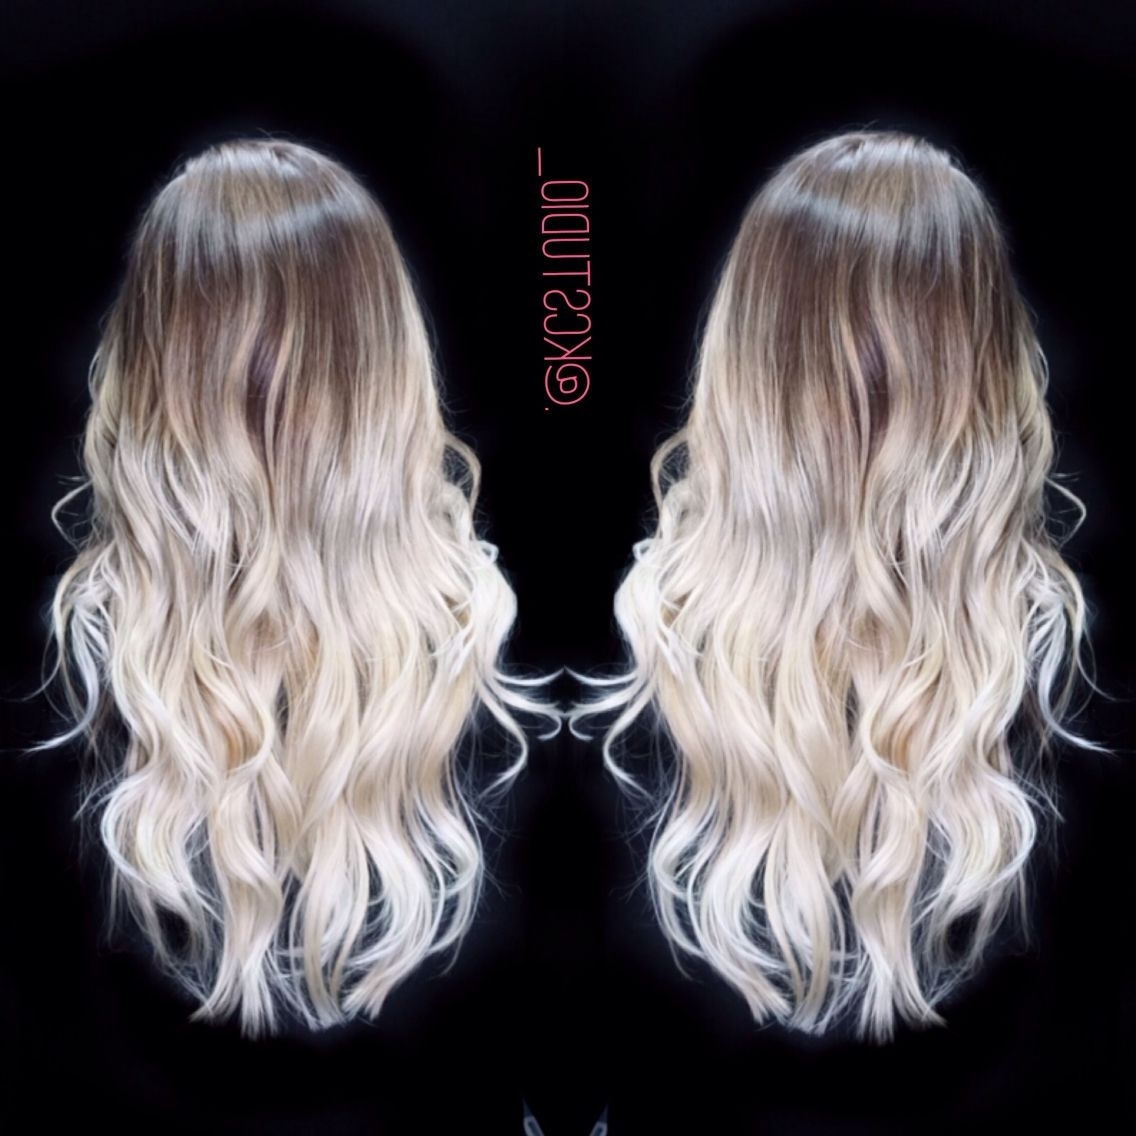 Icy Blonde Ombre Hair Color (Gallery 6 of 20)